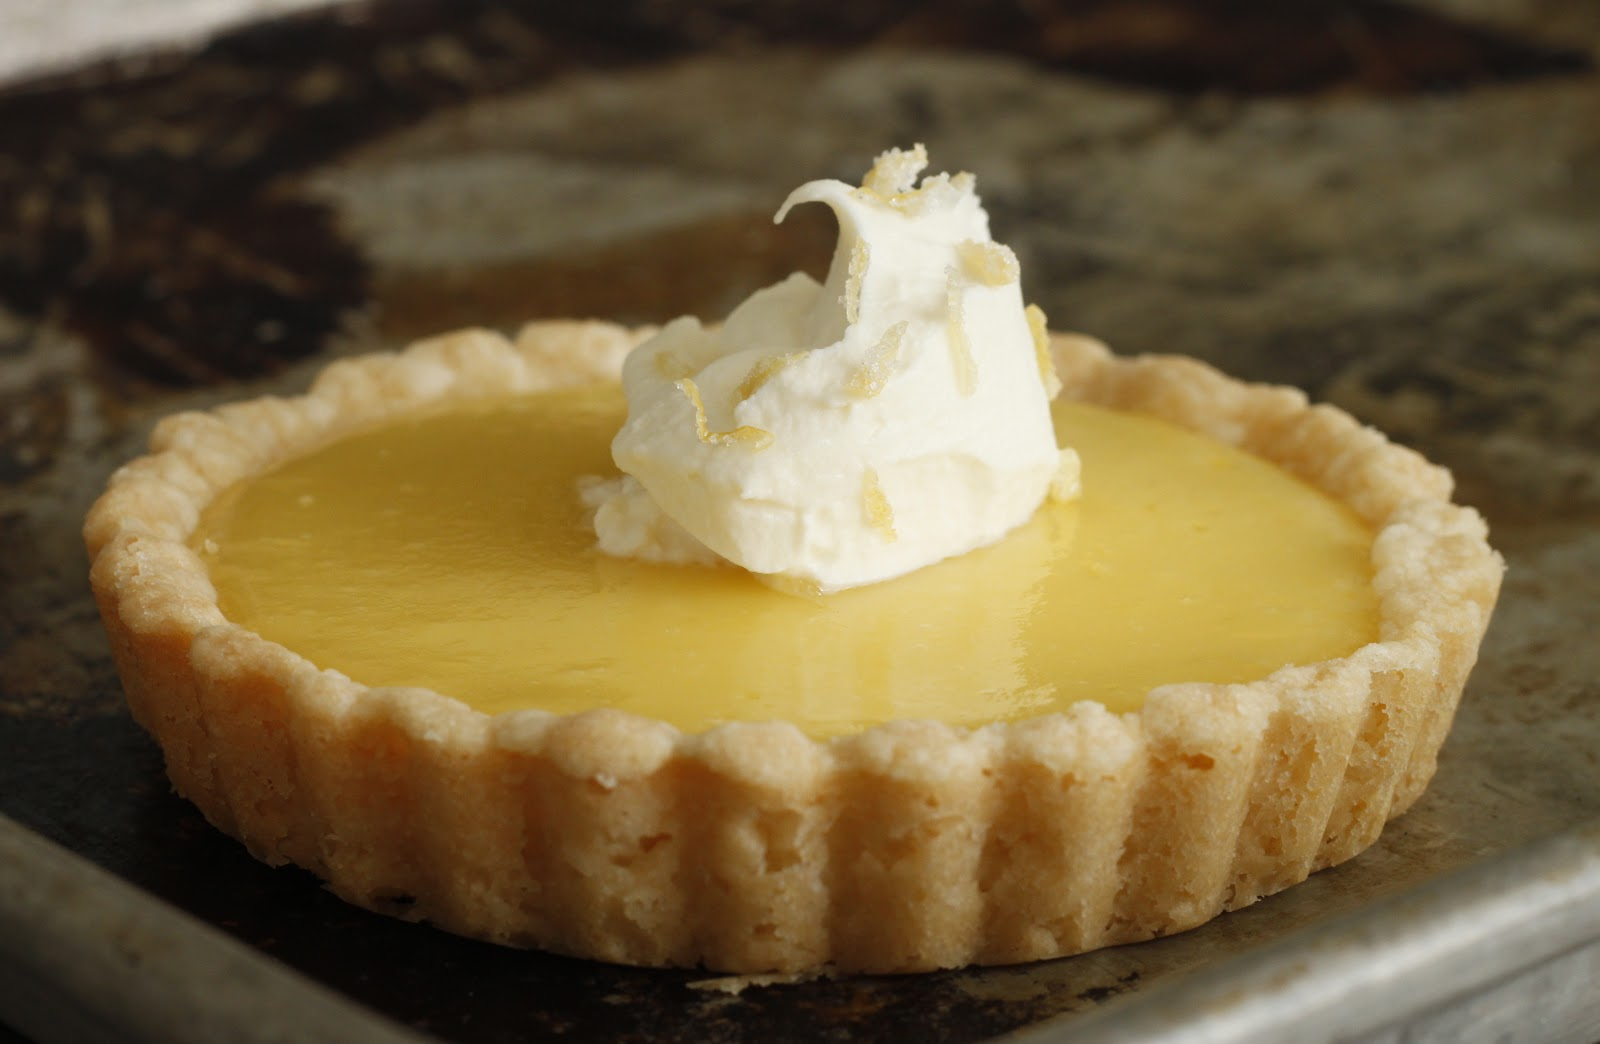 franish nonspeaker: Lemon-Honey Tart with Salted Shortbread Crust